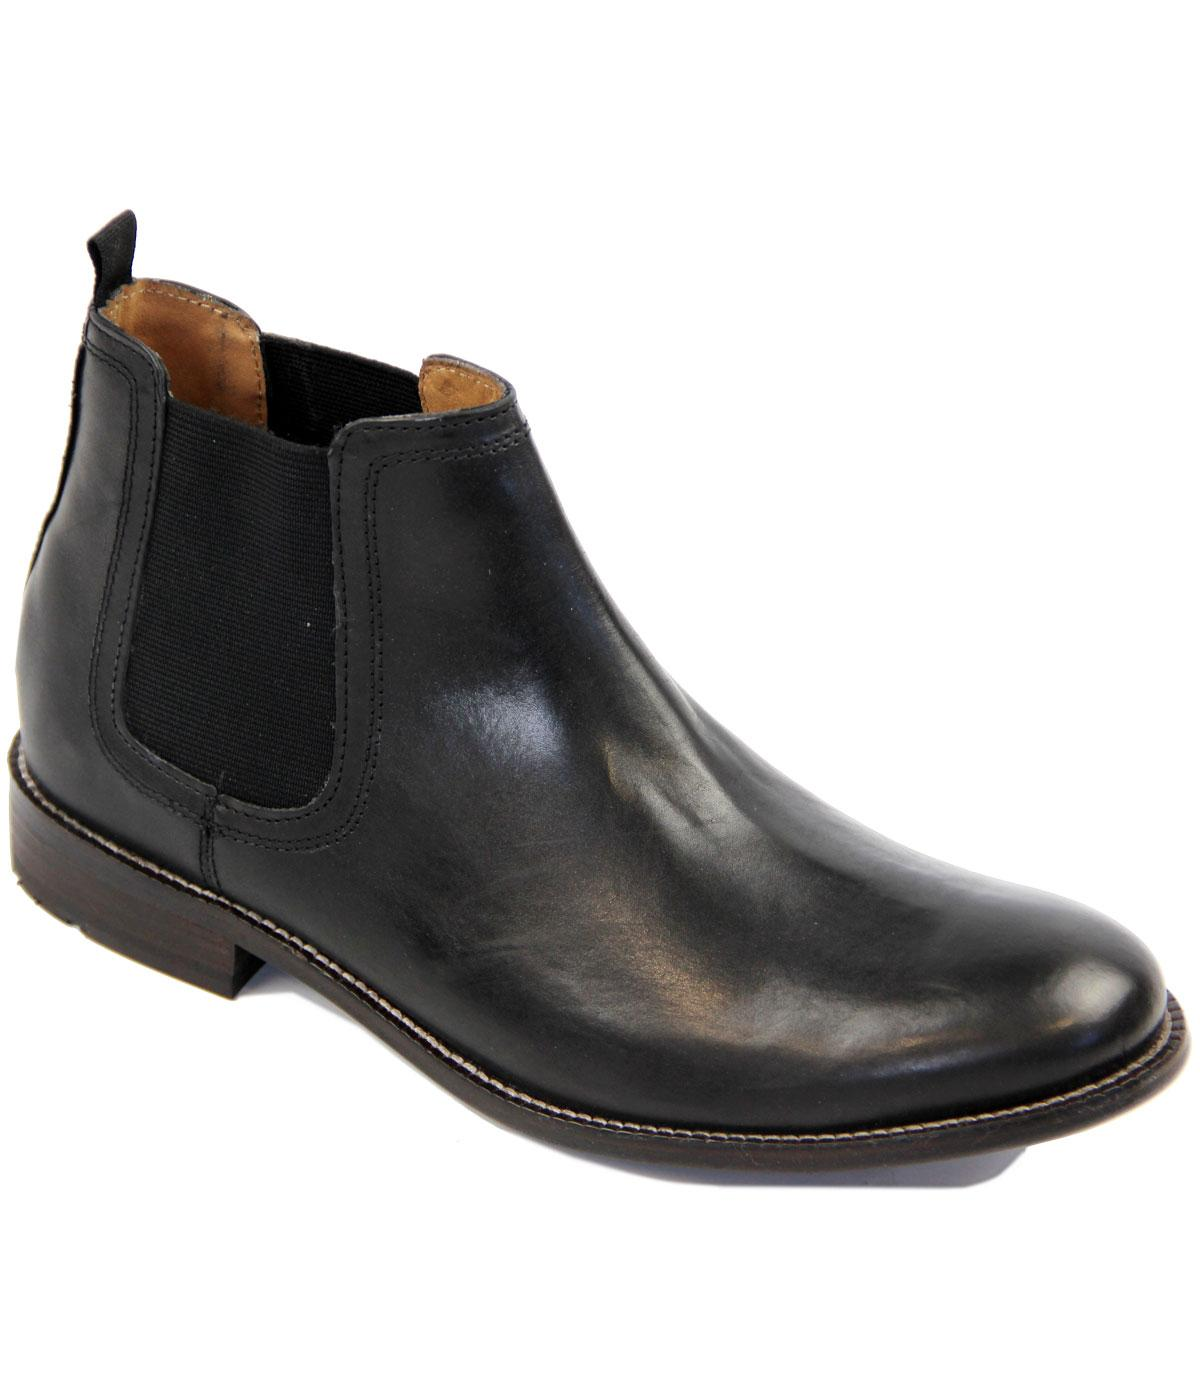 e3761df2376 Ista BEN SHERMAN Mod Smooth Leather Chelsea Boots